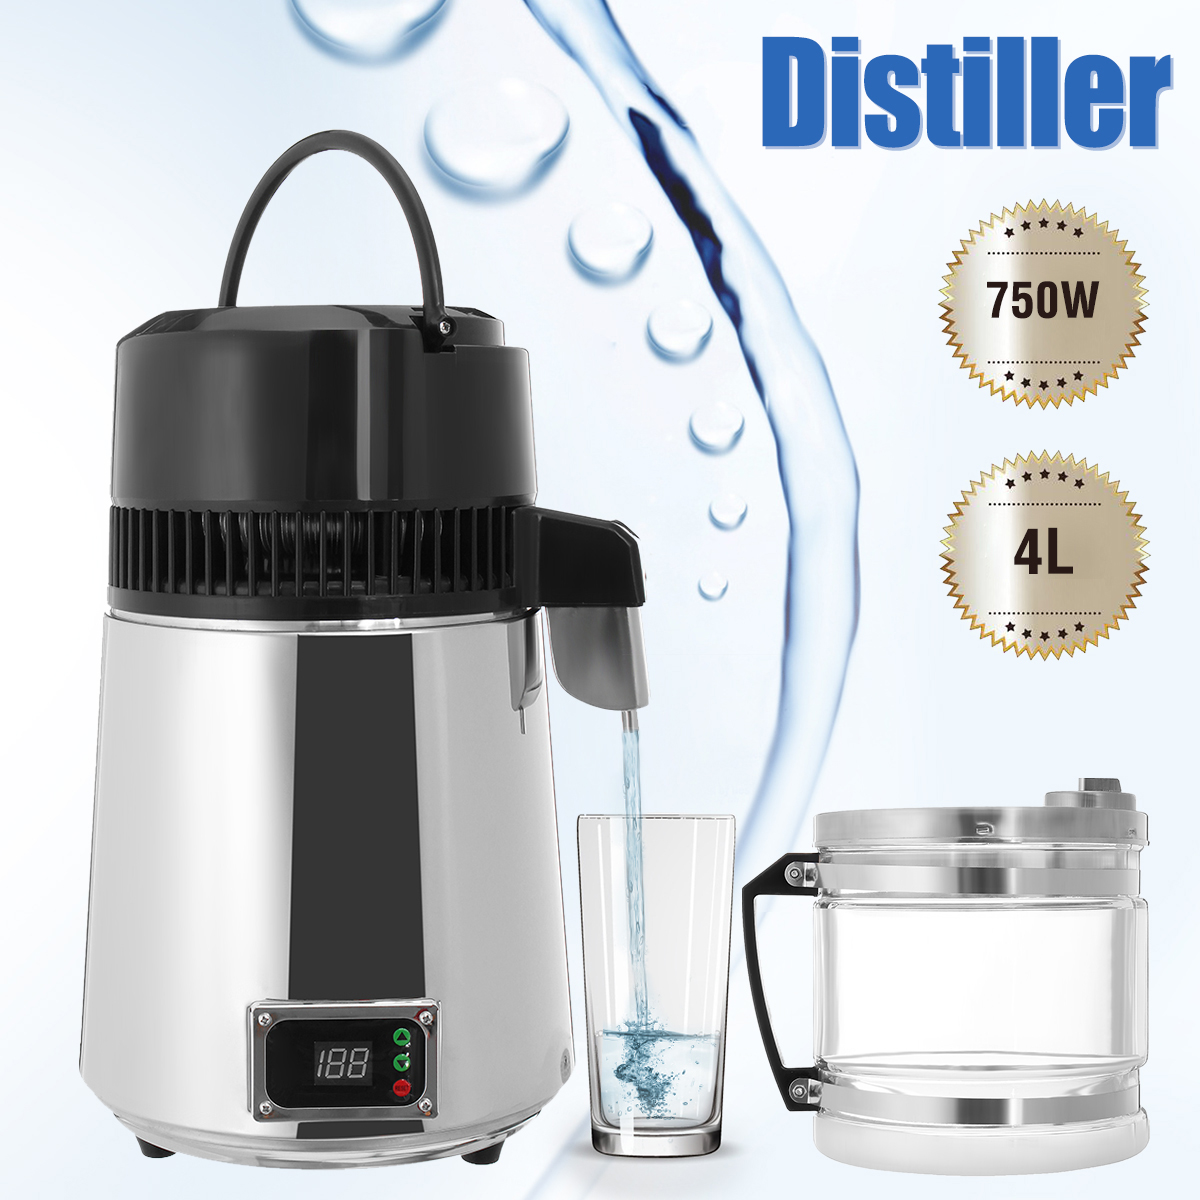 4L 750W Household Pure Water Distiller Electric Stainless Steel Water Purifier Container Filter Distilled Water Machine Glass dmwd household water distilled machine pure water distiller filter electric distillation purifier stainless steel 110v 220v 4l